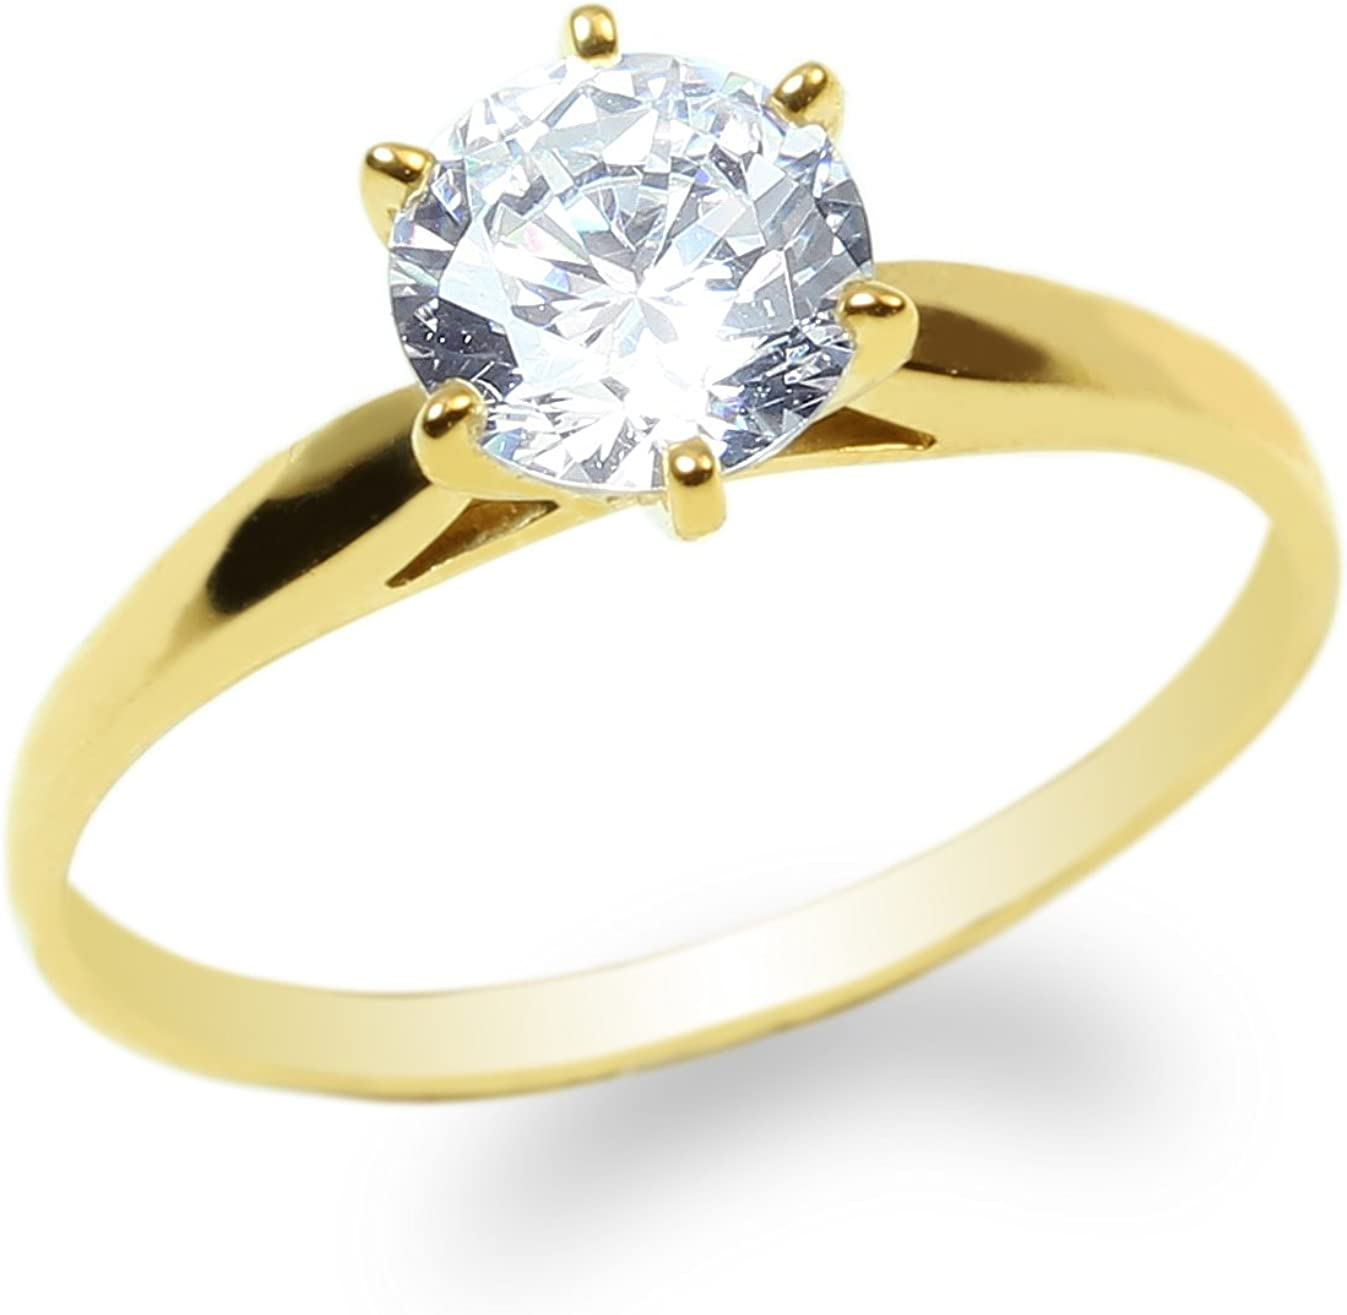 Ladies 10K Yellow Gold Solid Solitaire Ring 0.9ct Round CZ Clear Size 4-10